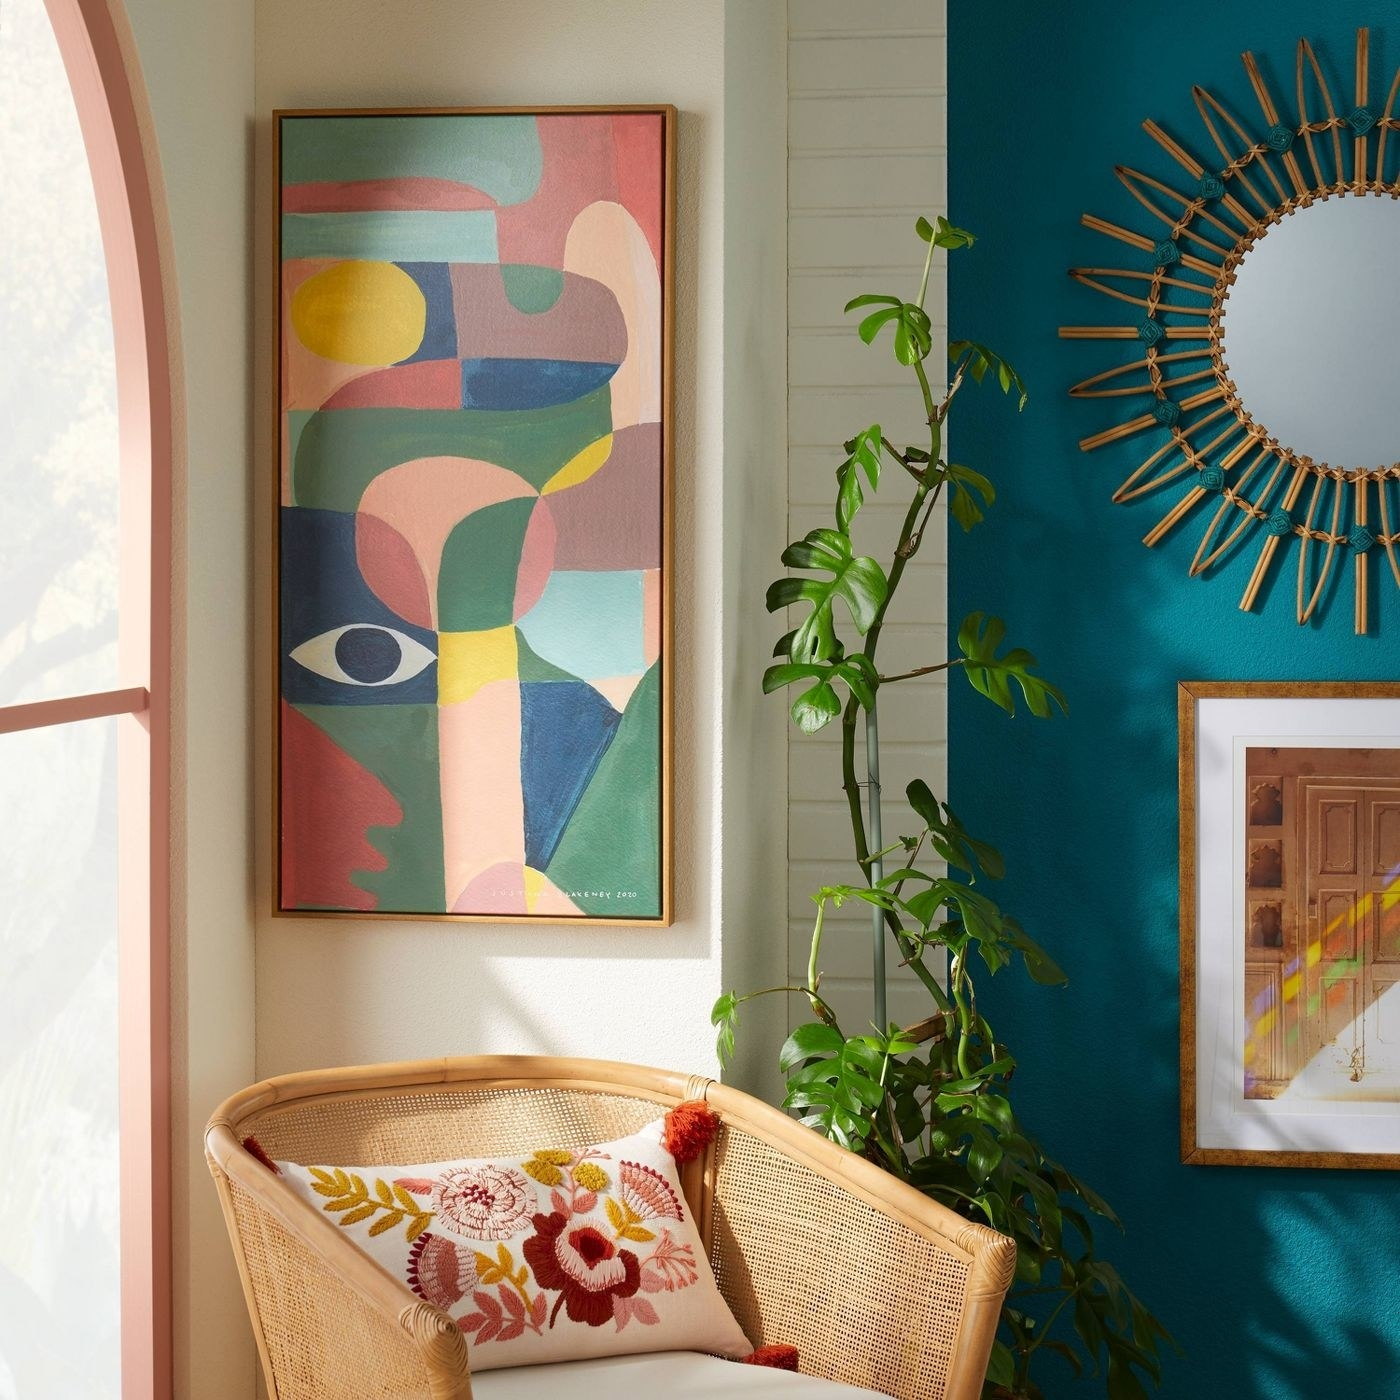 abstract framed artwork hanging on a white wall